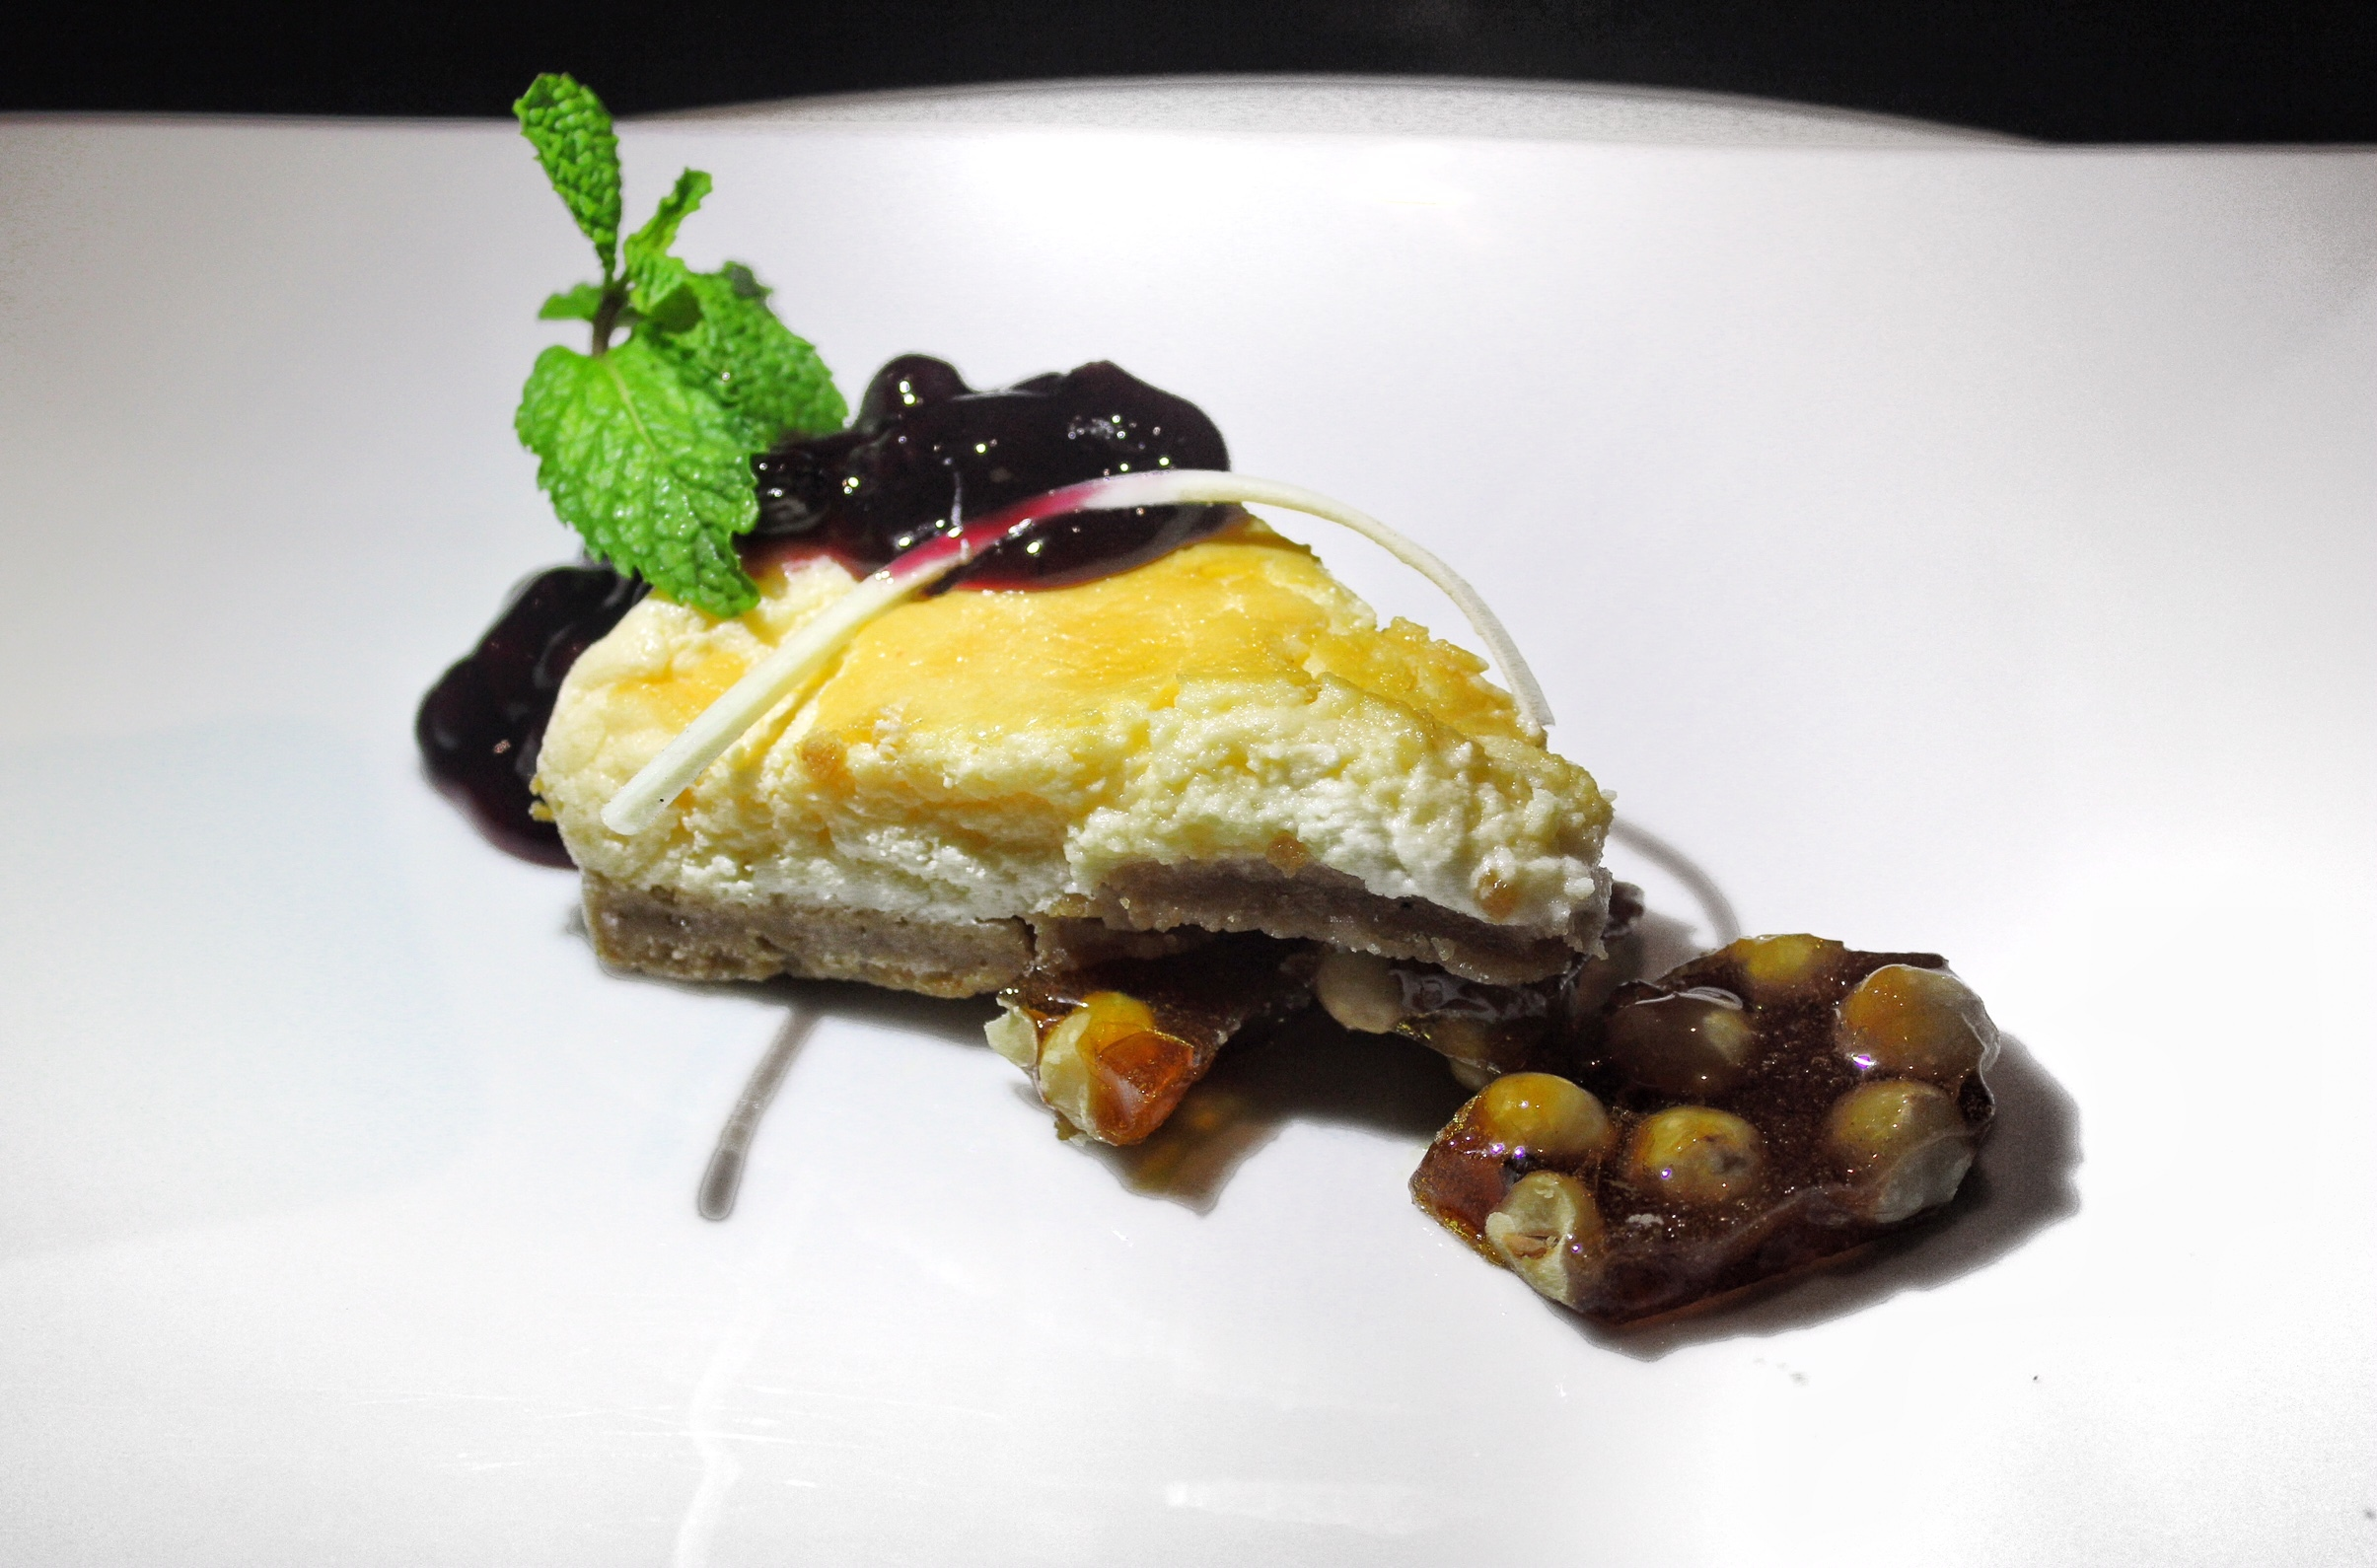 big-fish-phuket-marriott-resort-and-spa-nai-yang-beach-dessert